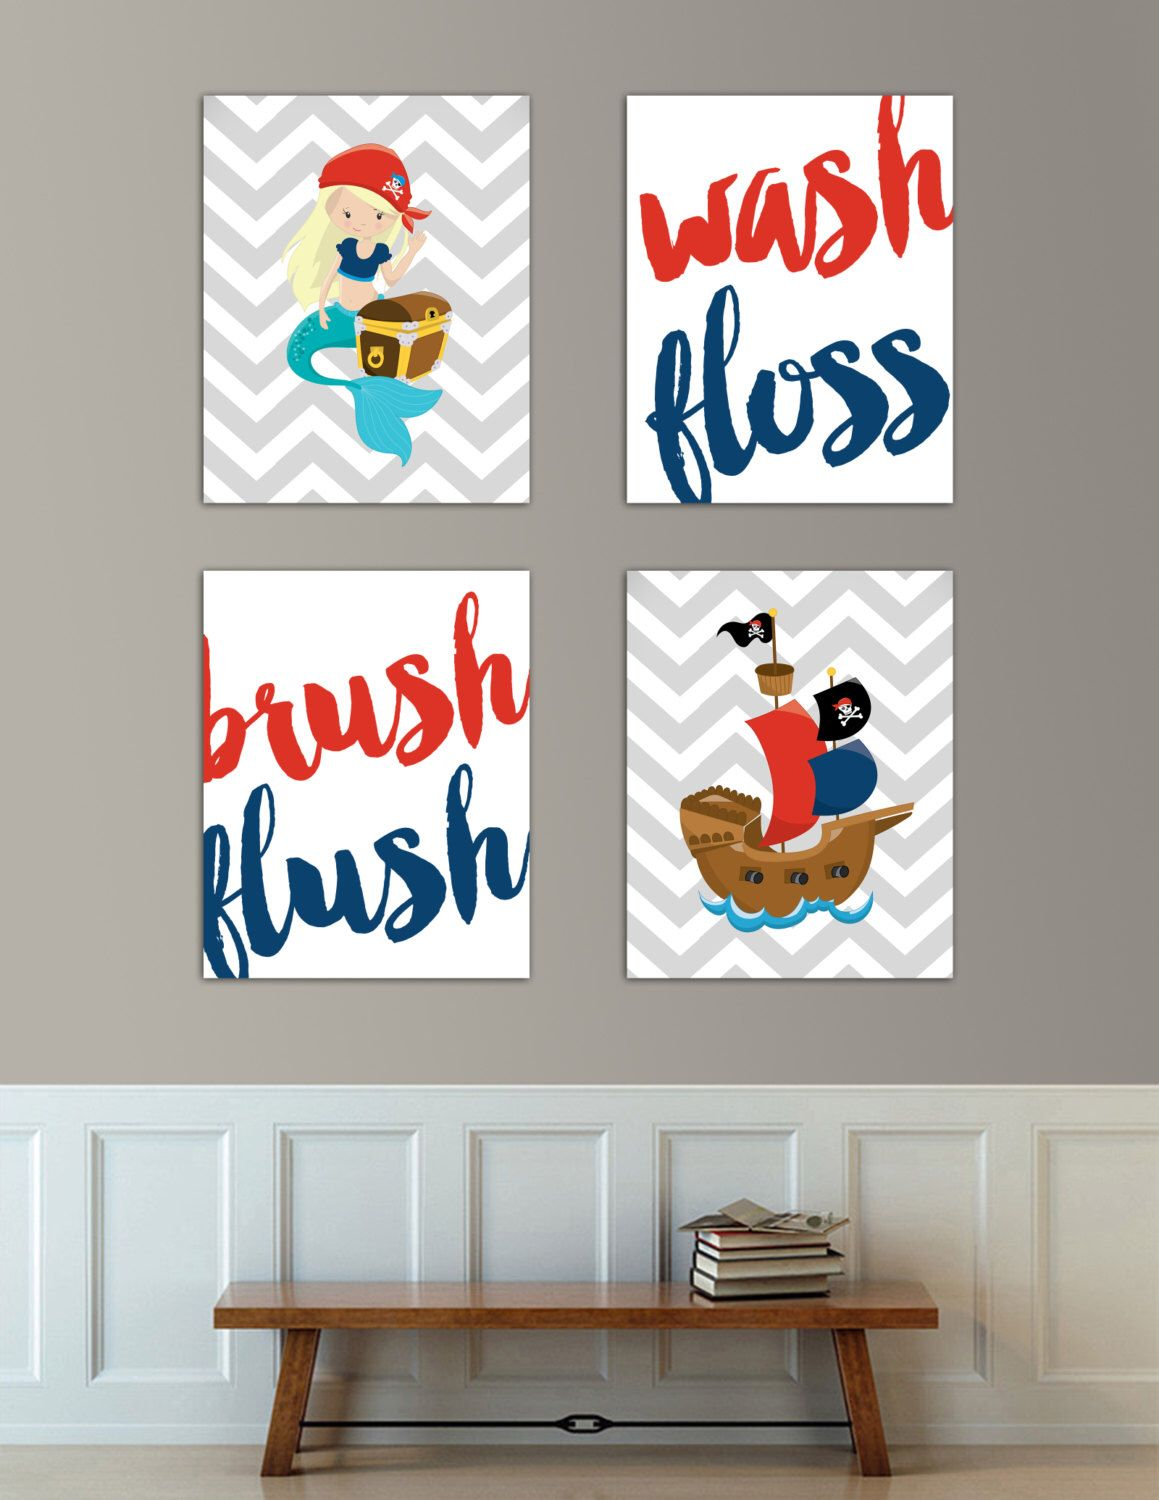 Kids Bathroom Art | Wash Brush Floss Flush | Pirate | Mermaid